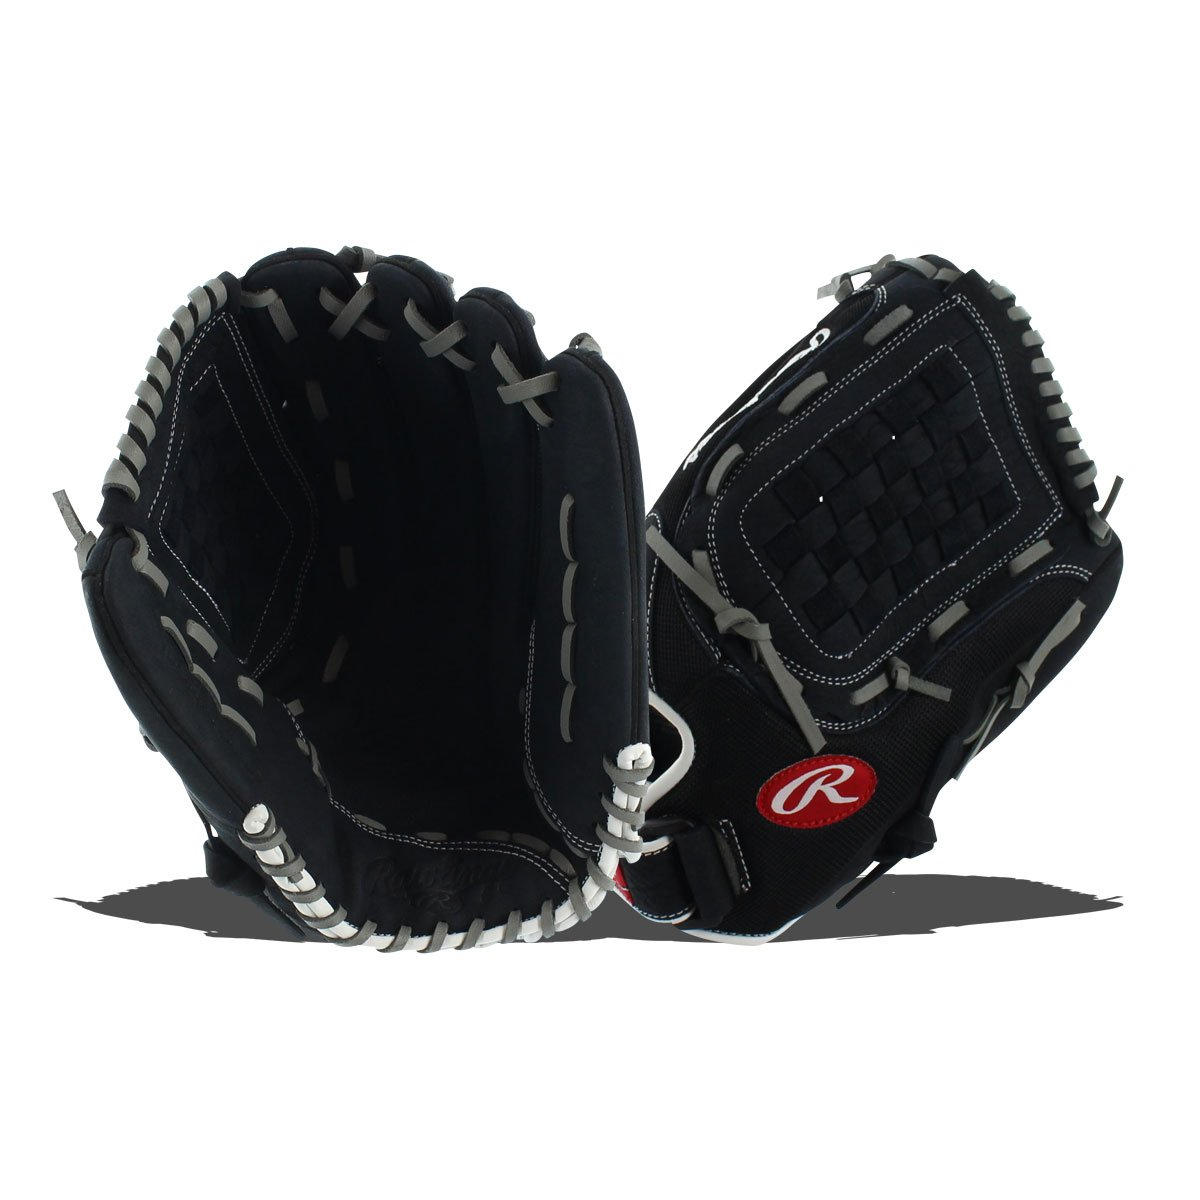 Rawlings Renegade 14インチr140bgb Slowpitchソフトボールグローブ B07C9L2QTF